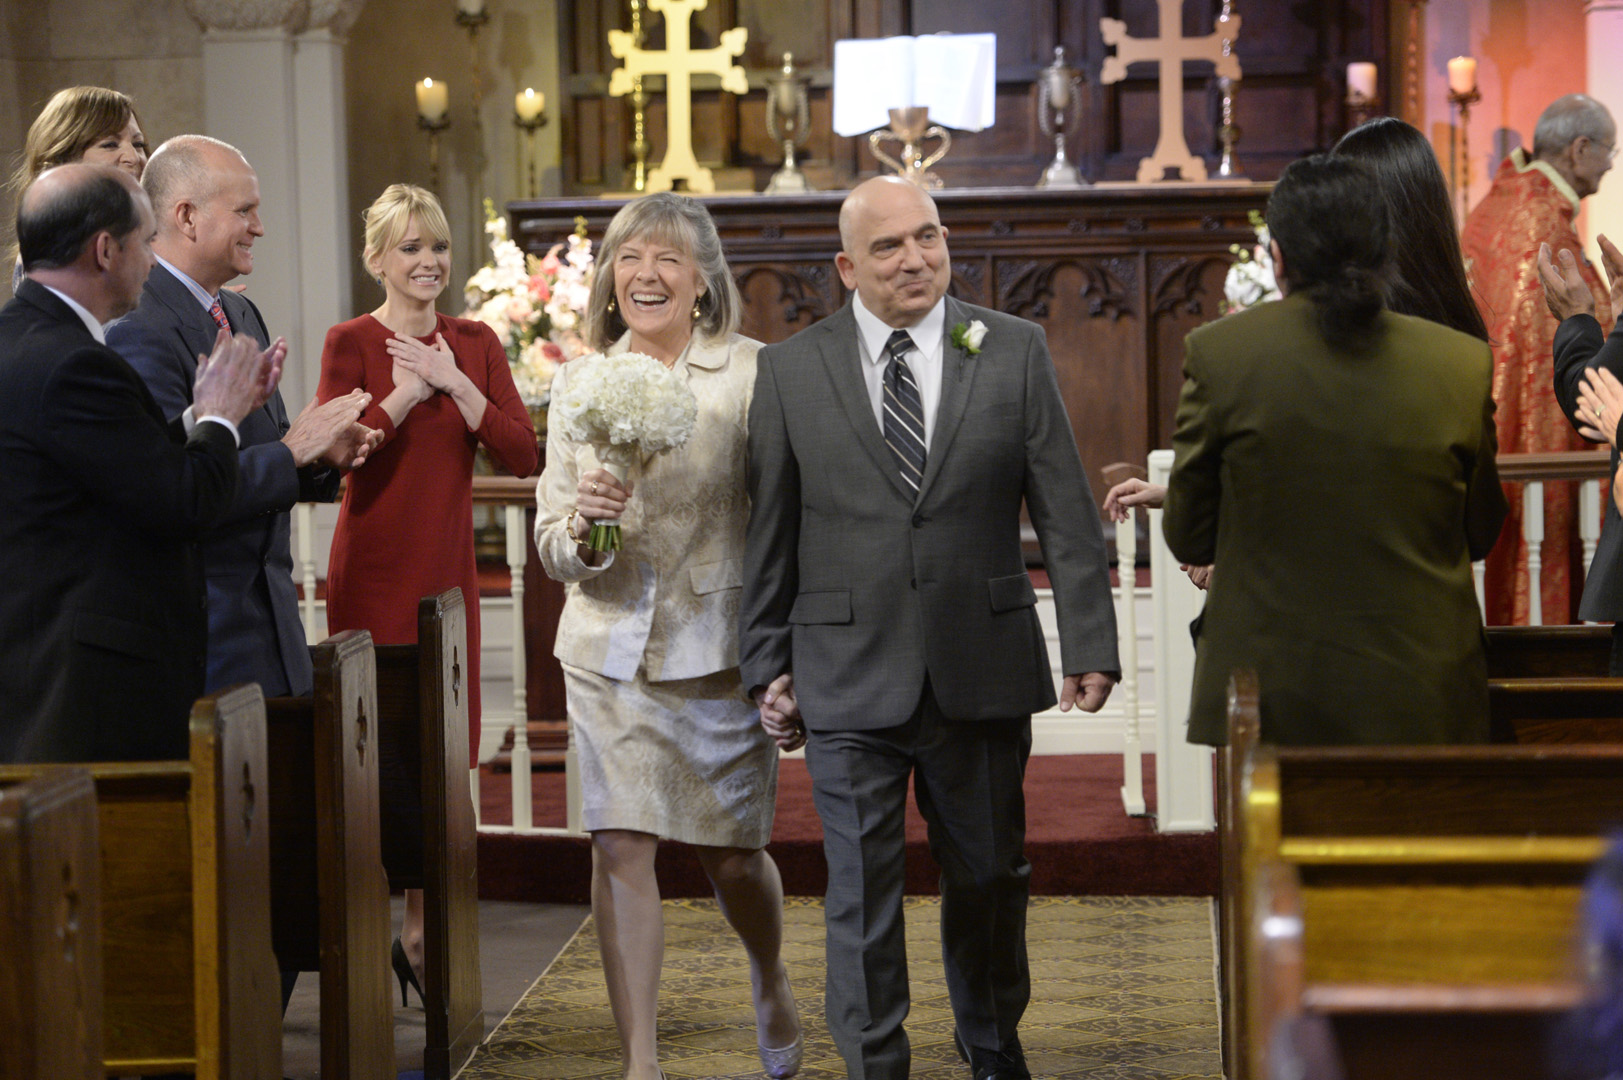 Marjorie happily struts down the aisle with her new husband, Victor.